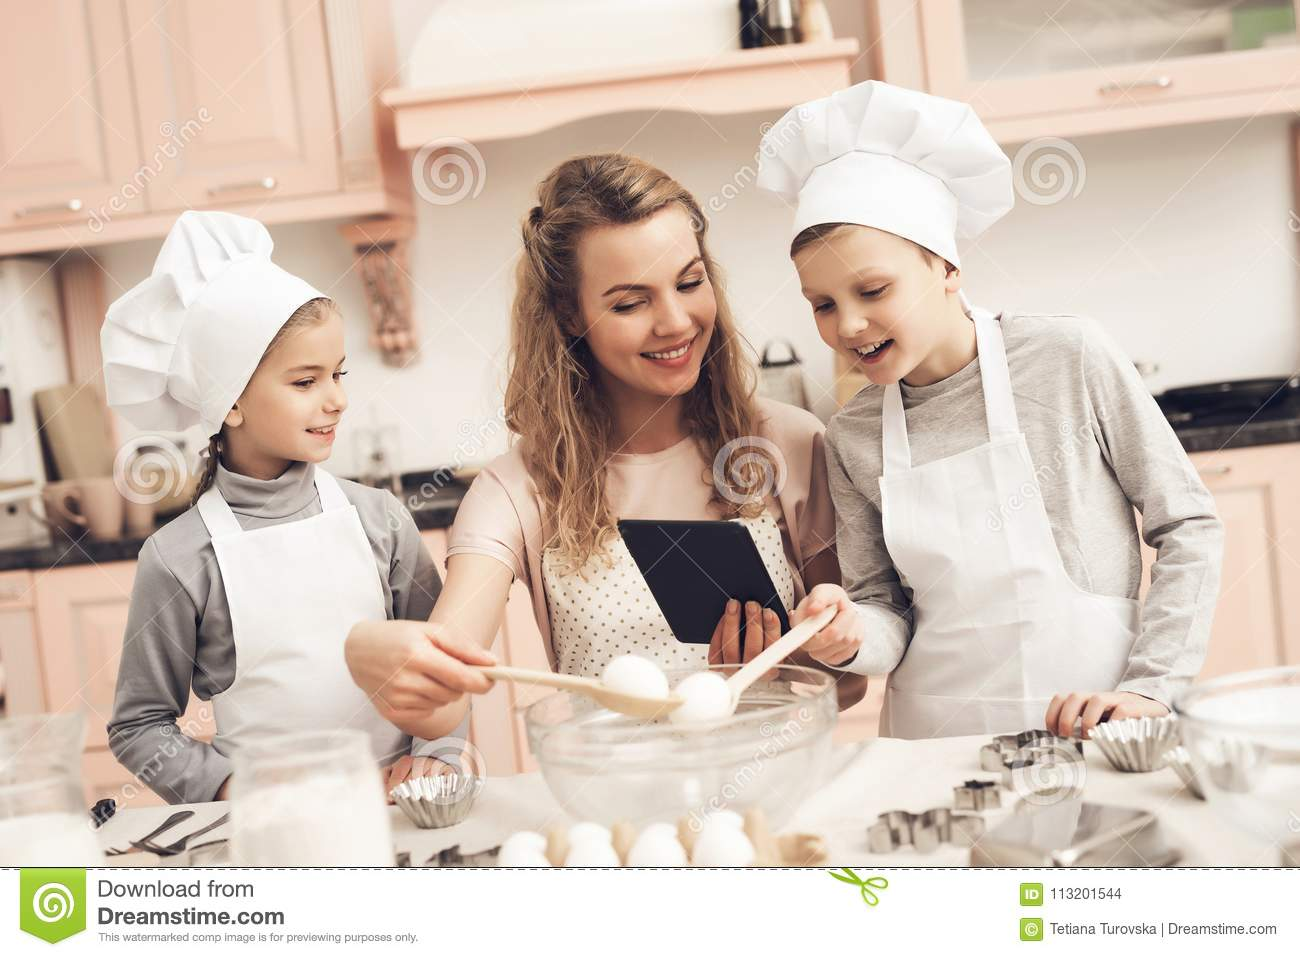 Children with mother in kitchen. Family is reading recipe on tablet.